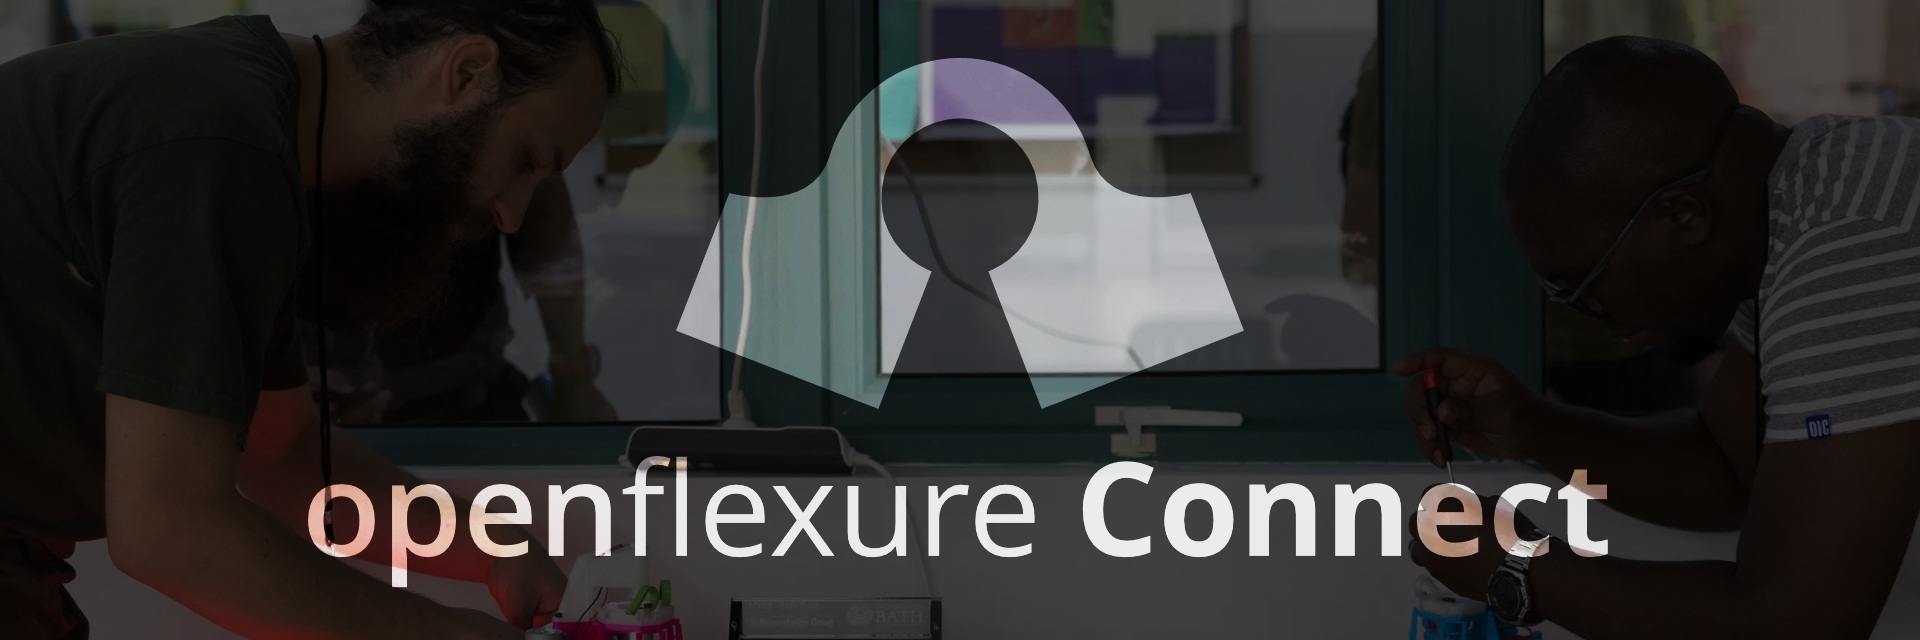 OpenFlexure Connect banner